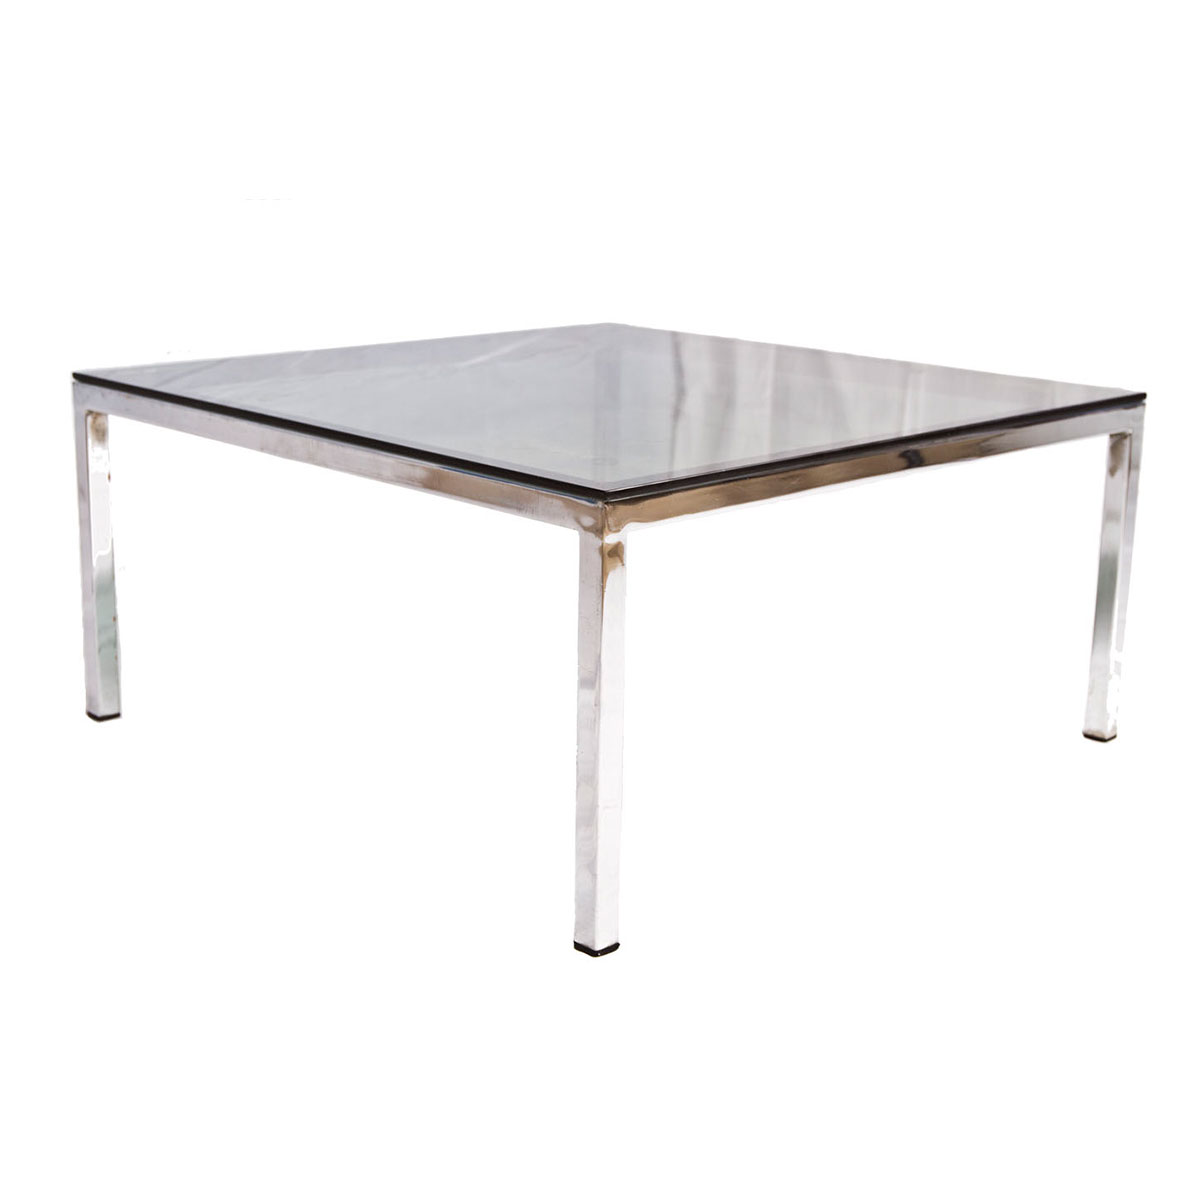 1970's Designer Smoked Glass & Chrome Square Coffee Table